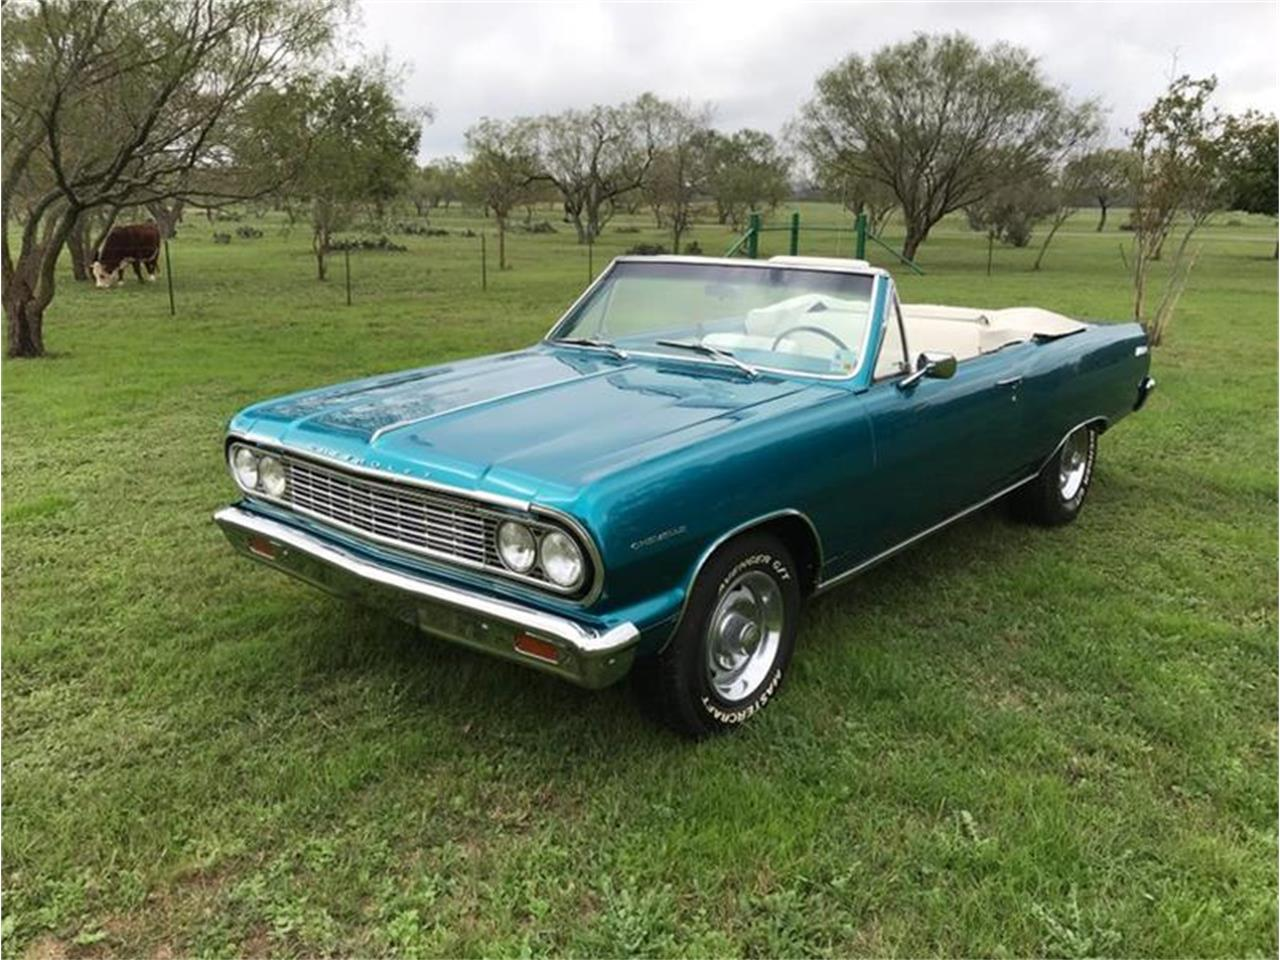 1964 Chevrolet Chevelle for sale in Fredericksburg, TX – photo 44